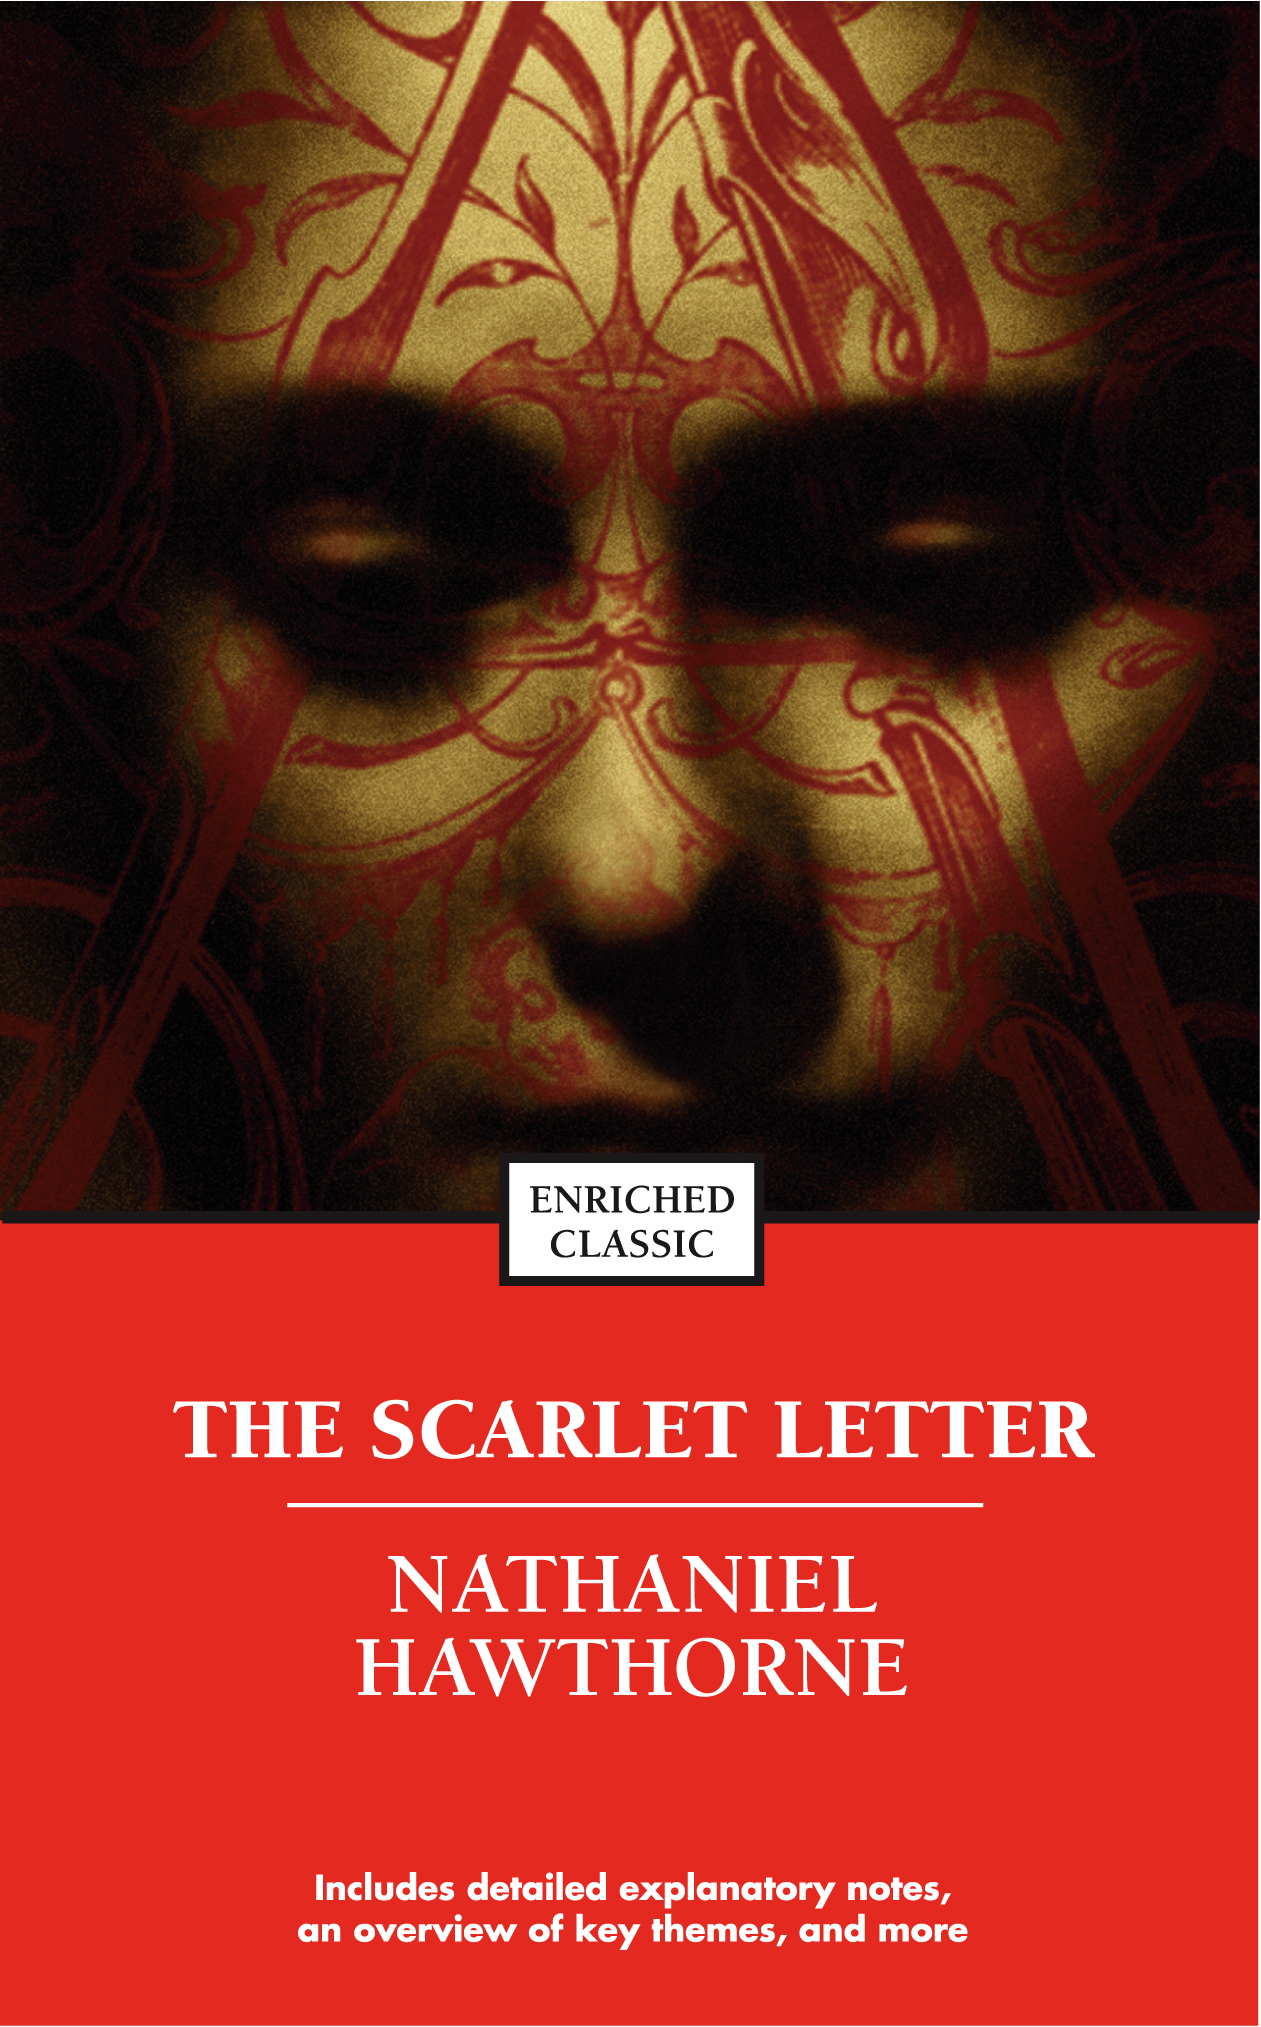 The Scarlet Letter | Book by Nathaniel Hawthorne | Official Publisher ...